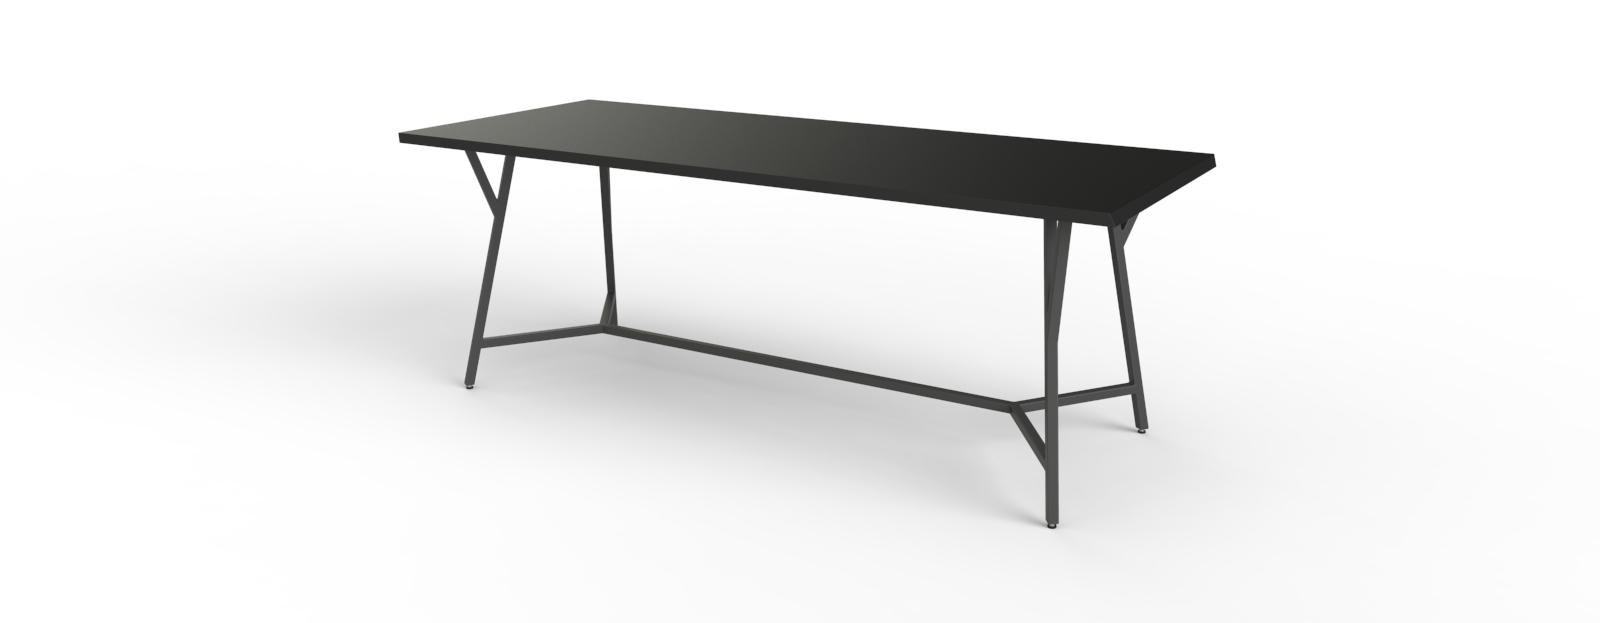 YV table costum 2